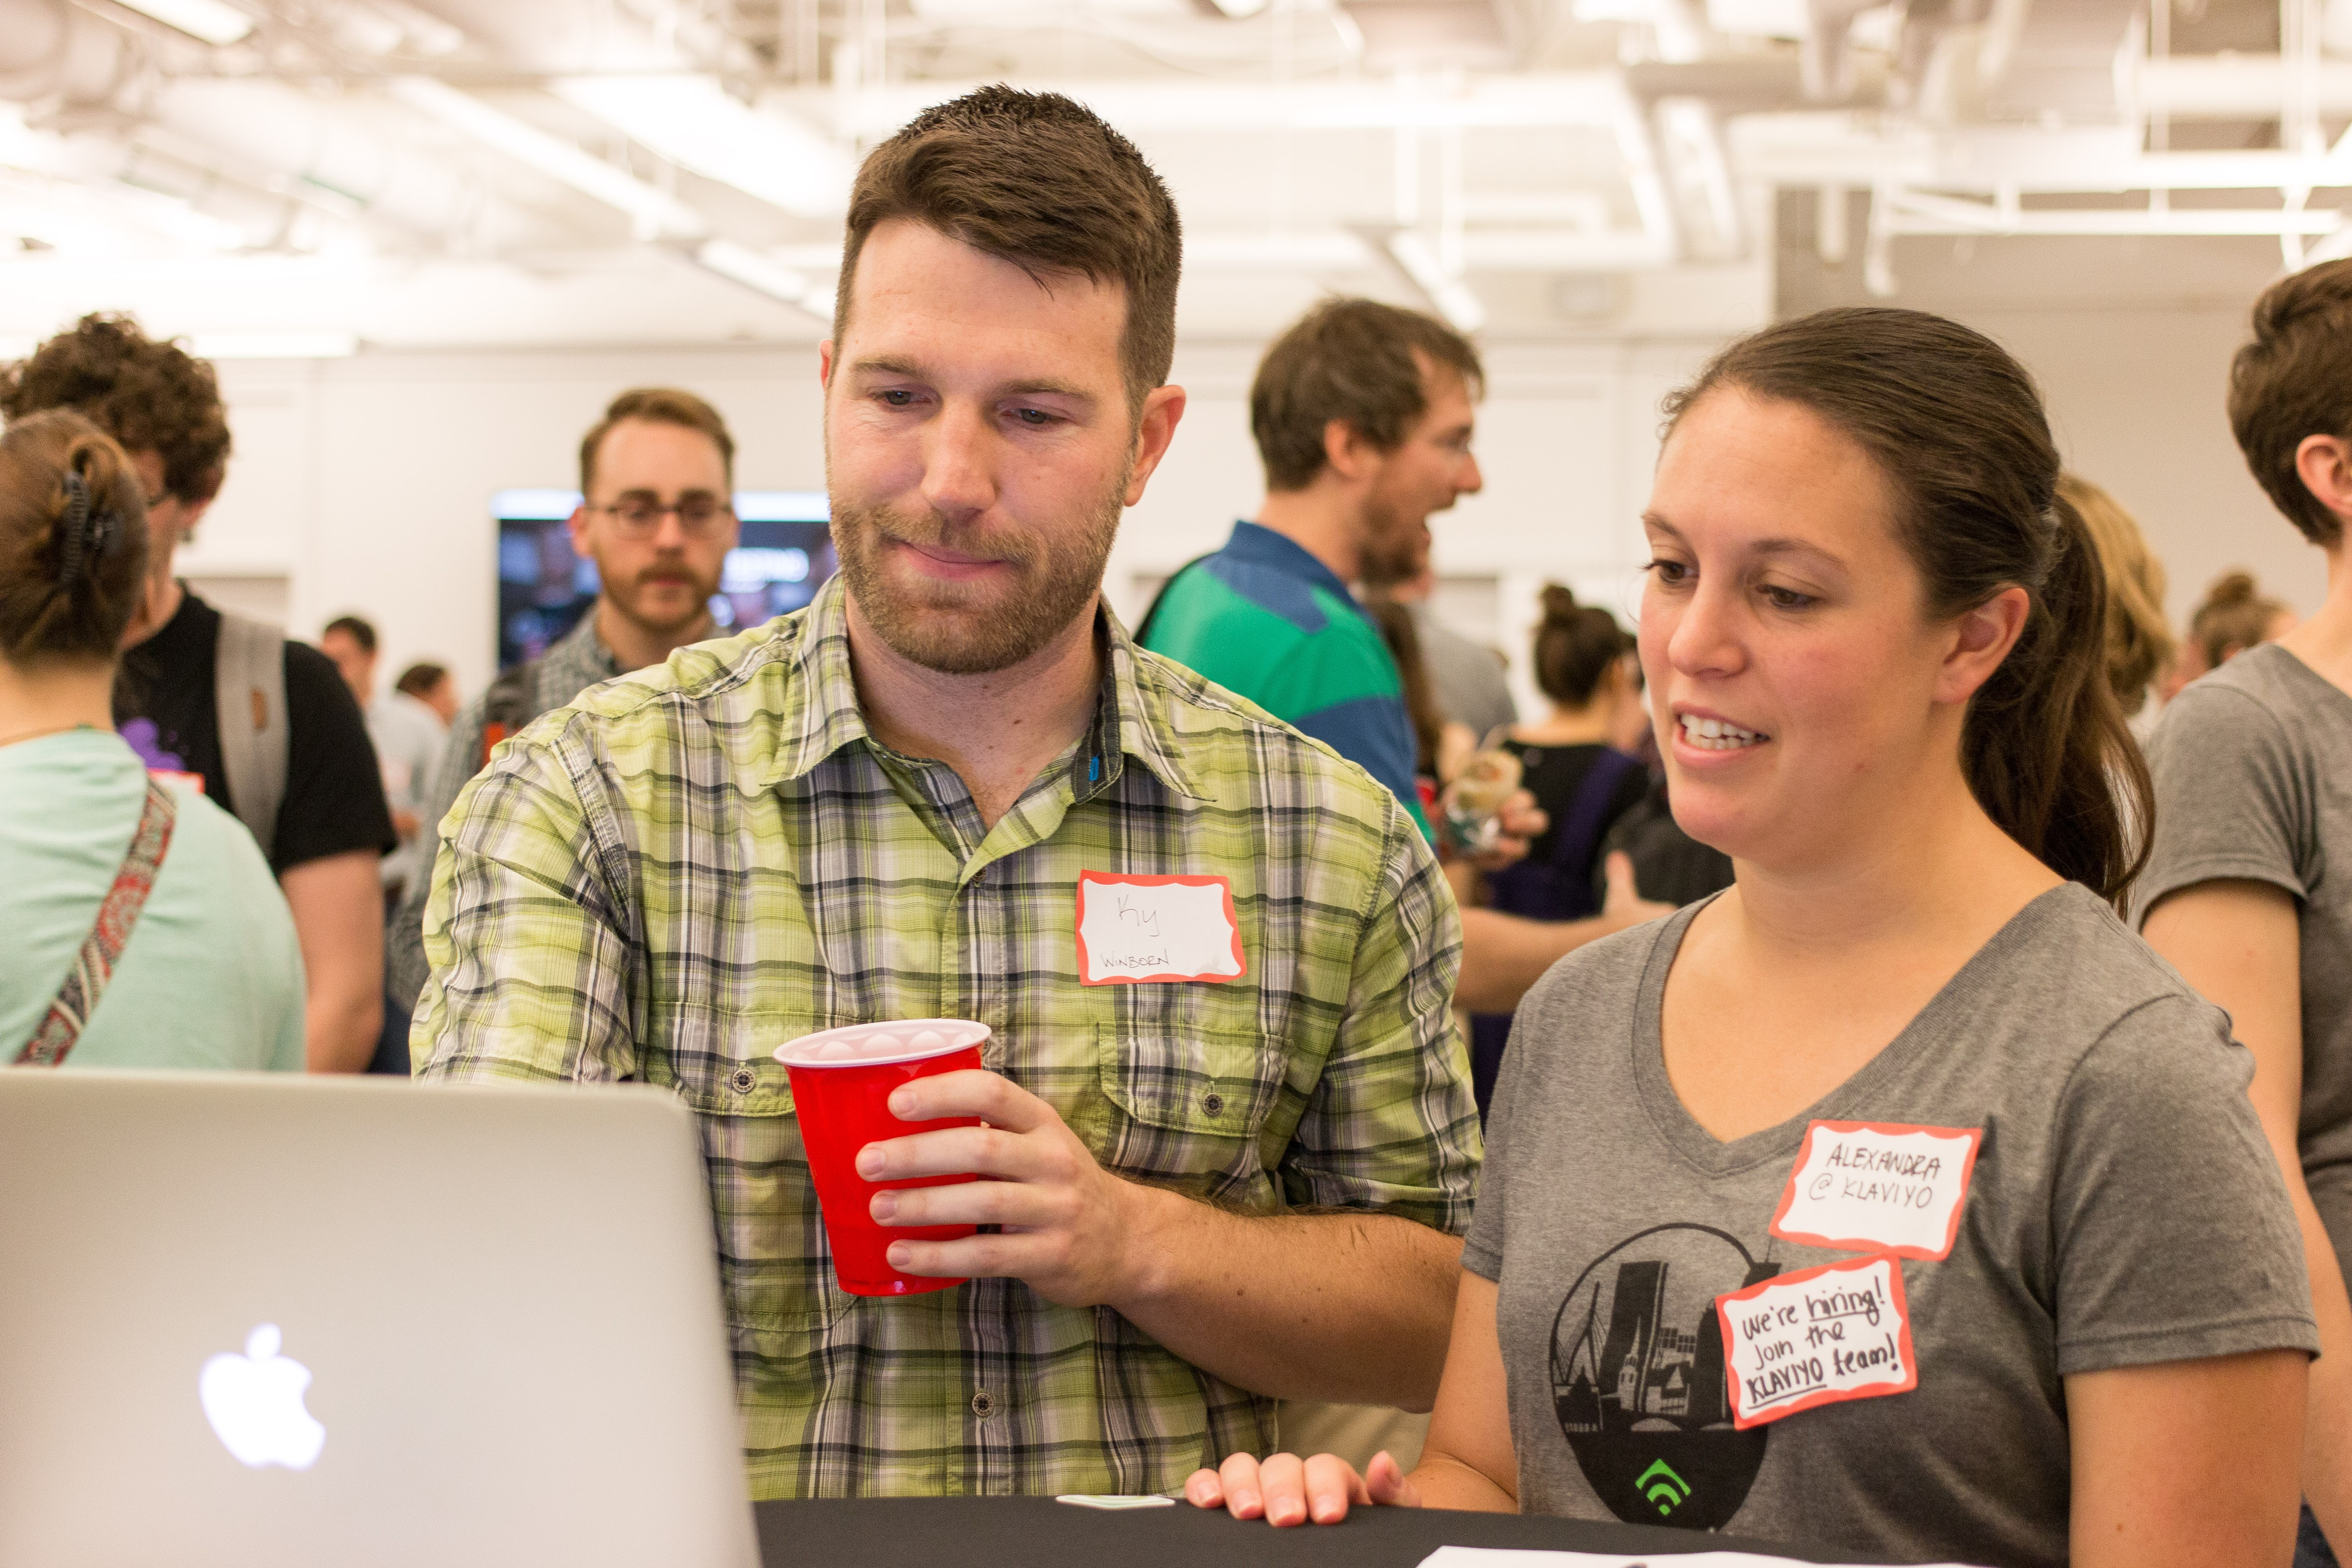 A man tests a product on a computer while a user researcher looks on